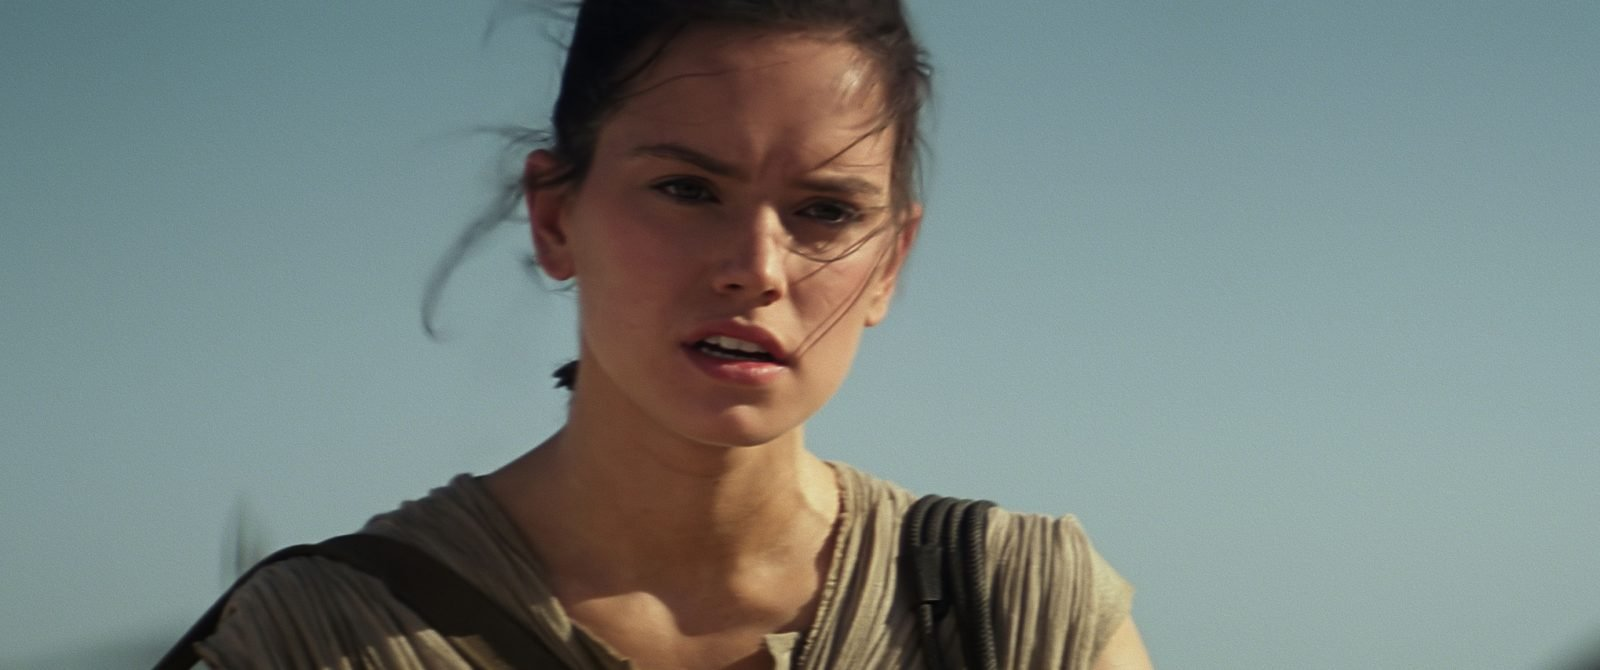 Star Wars VII The Force Awakens 23 - Rey on Jakku